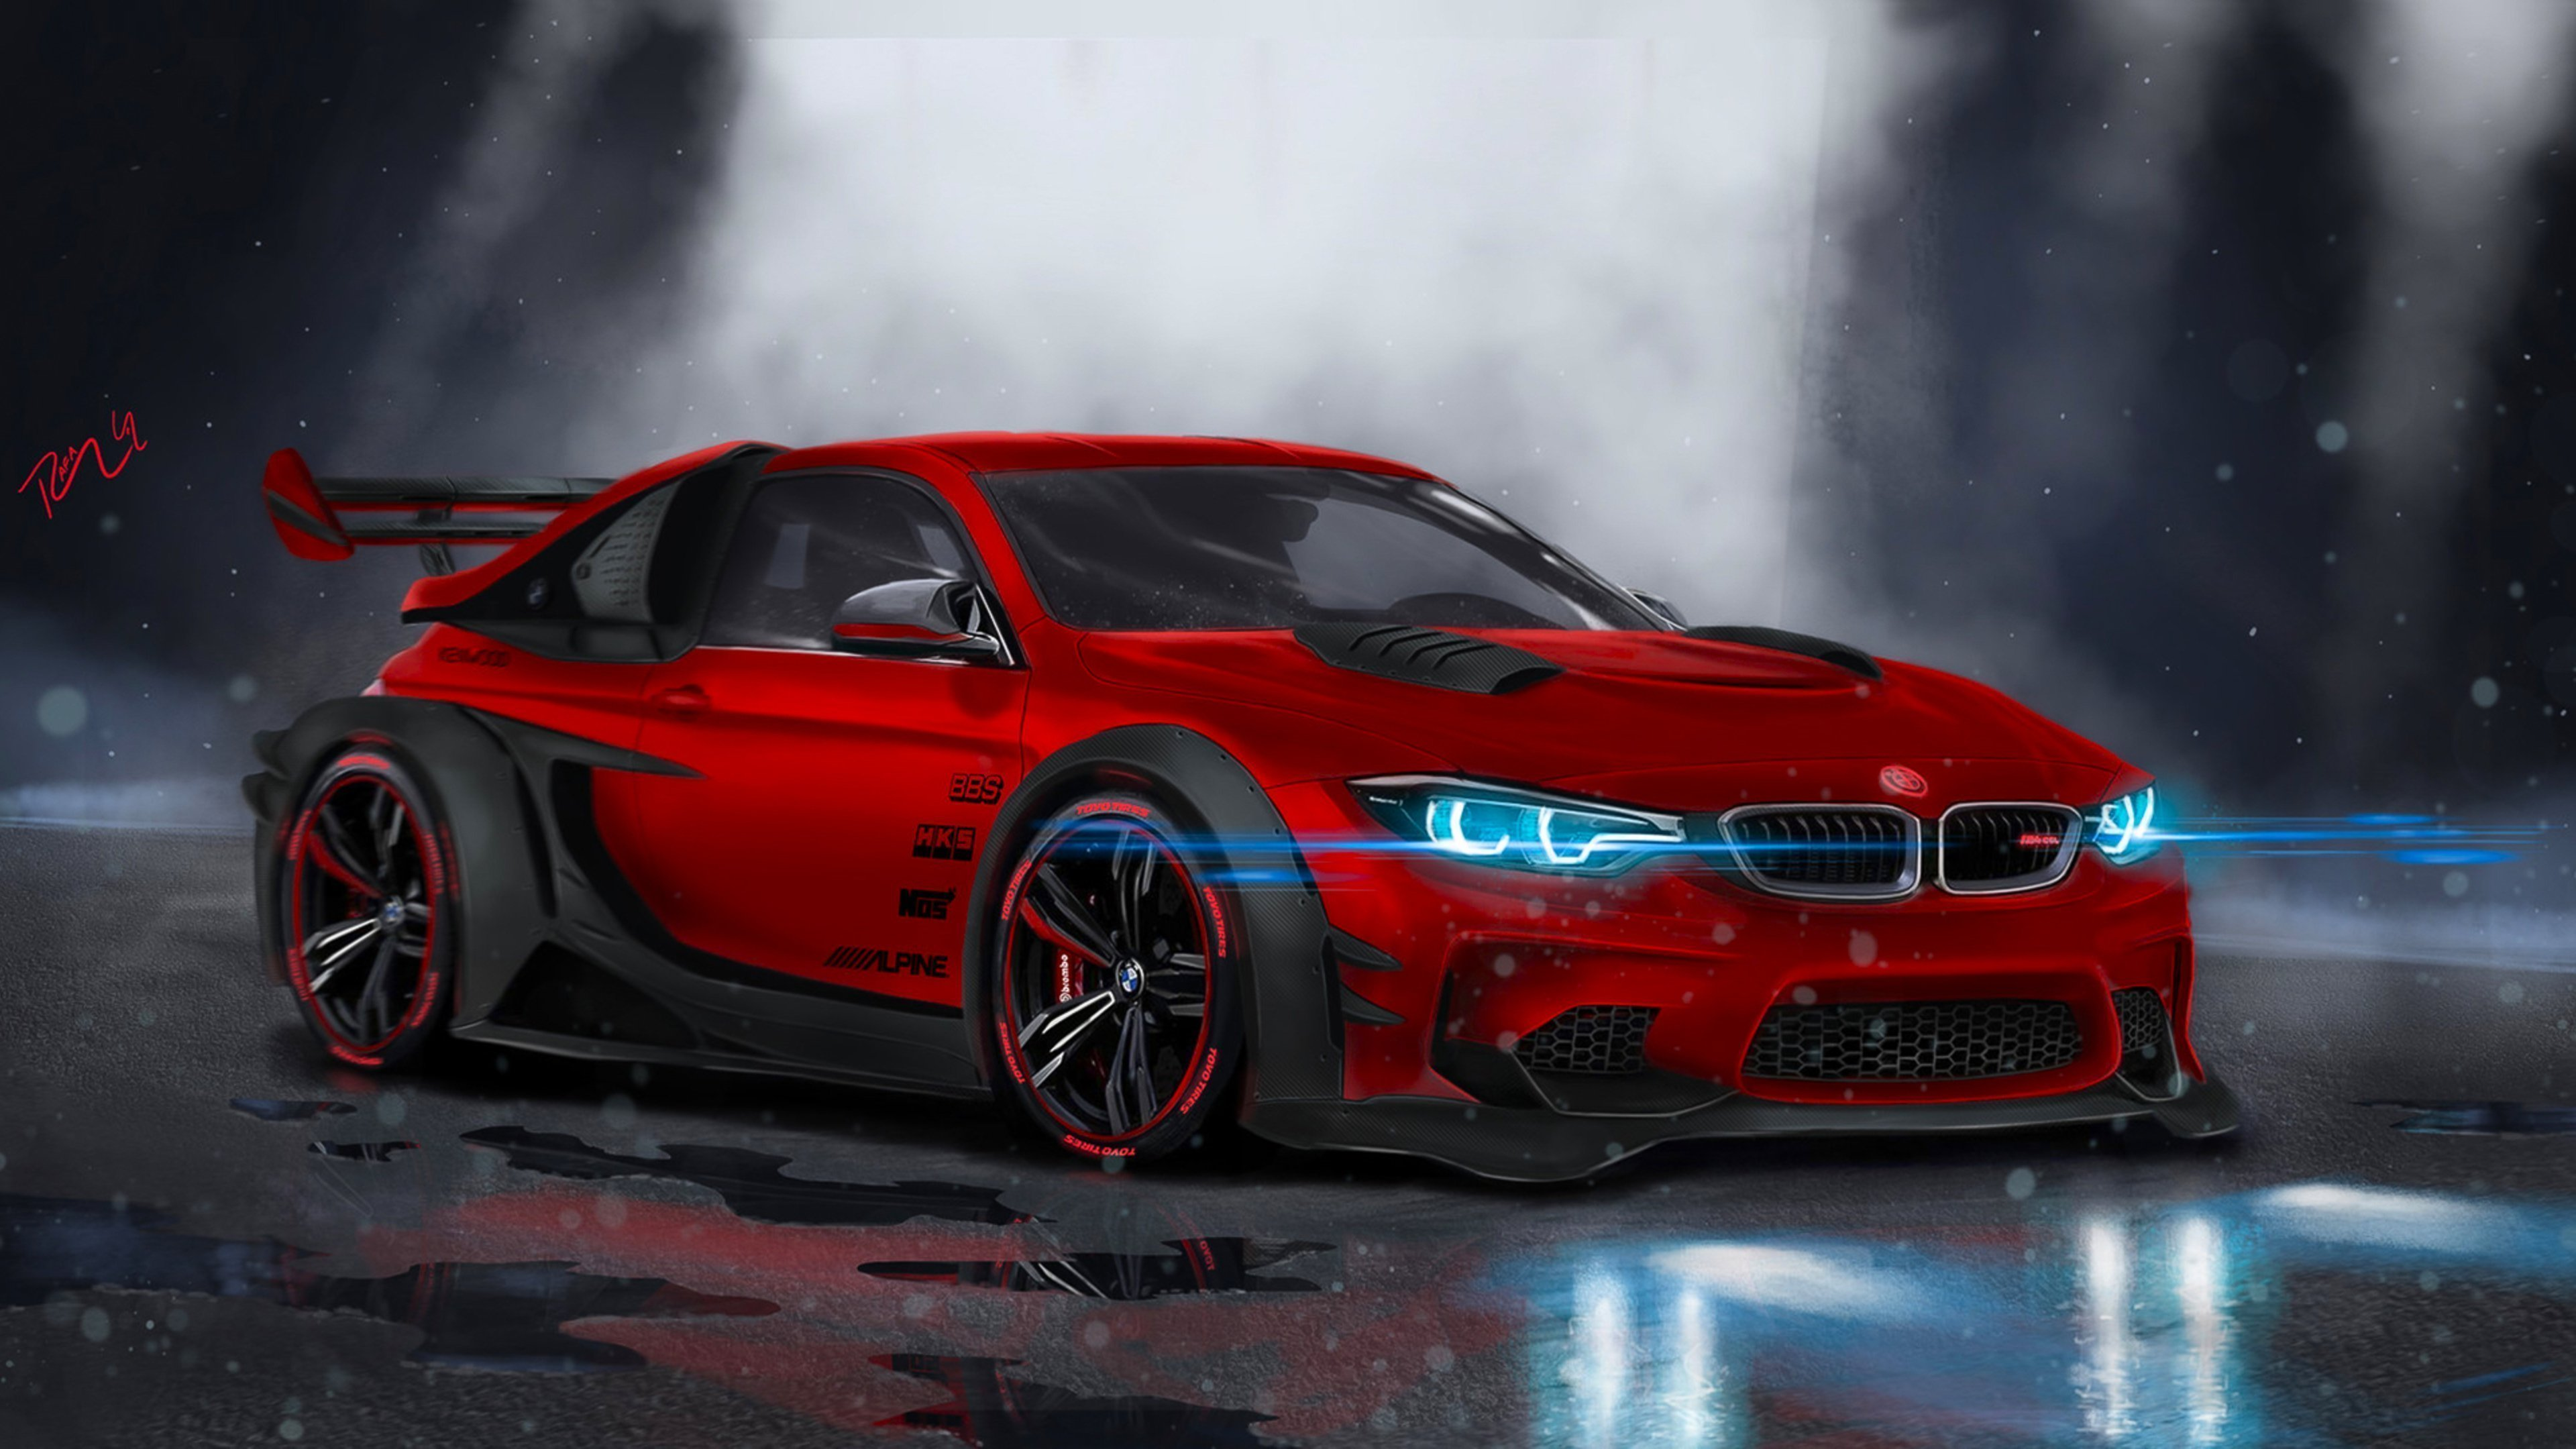 Latest Tag For Bmw Car Wallpaper Edit Photos Tag For Editing Hd Free Download